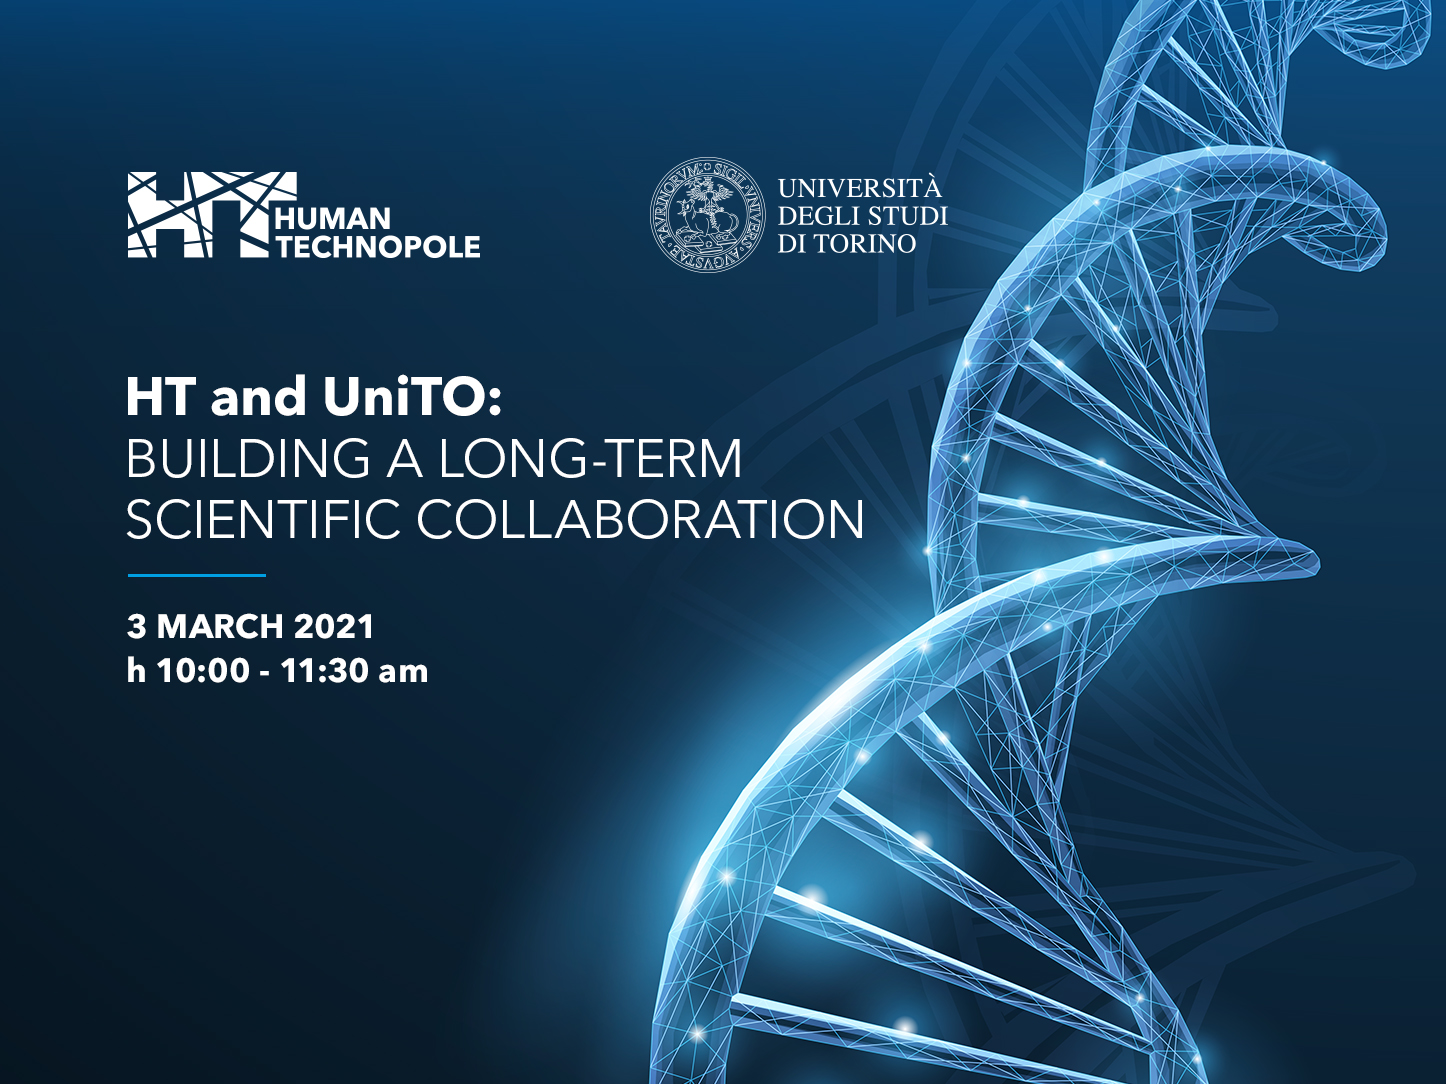 HT AND UniTO: BUILDING LONG-TERM SCIENTIFIC COLLABORATION